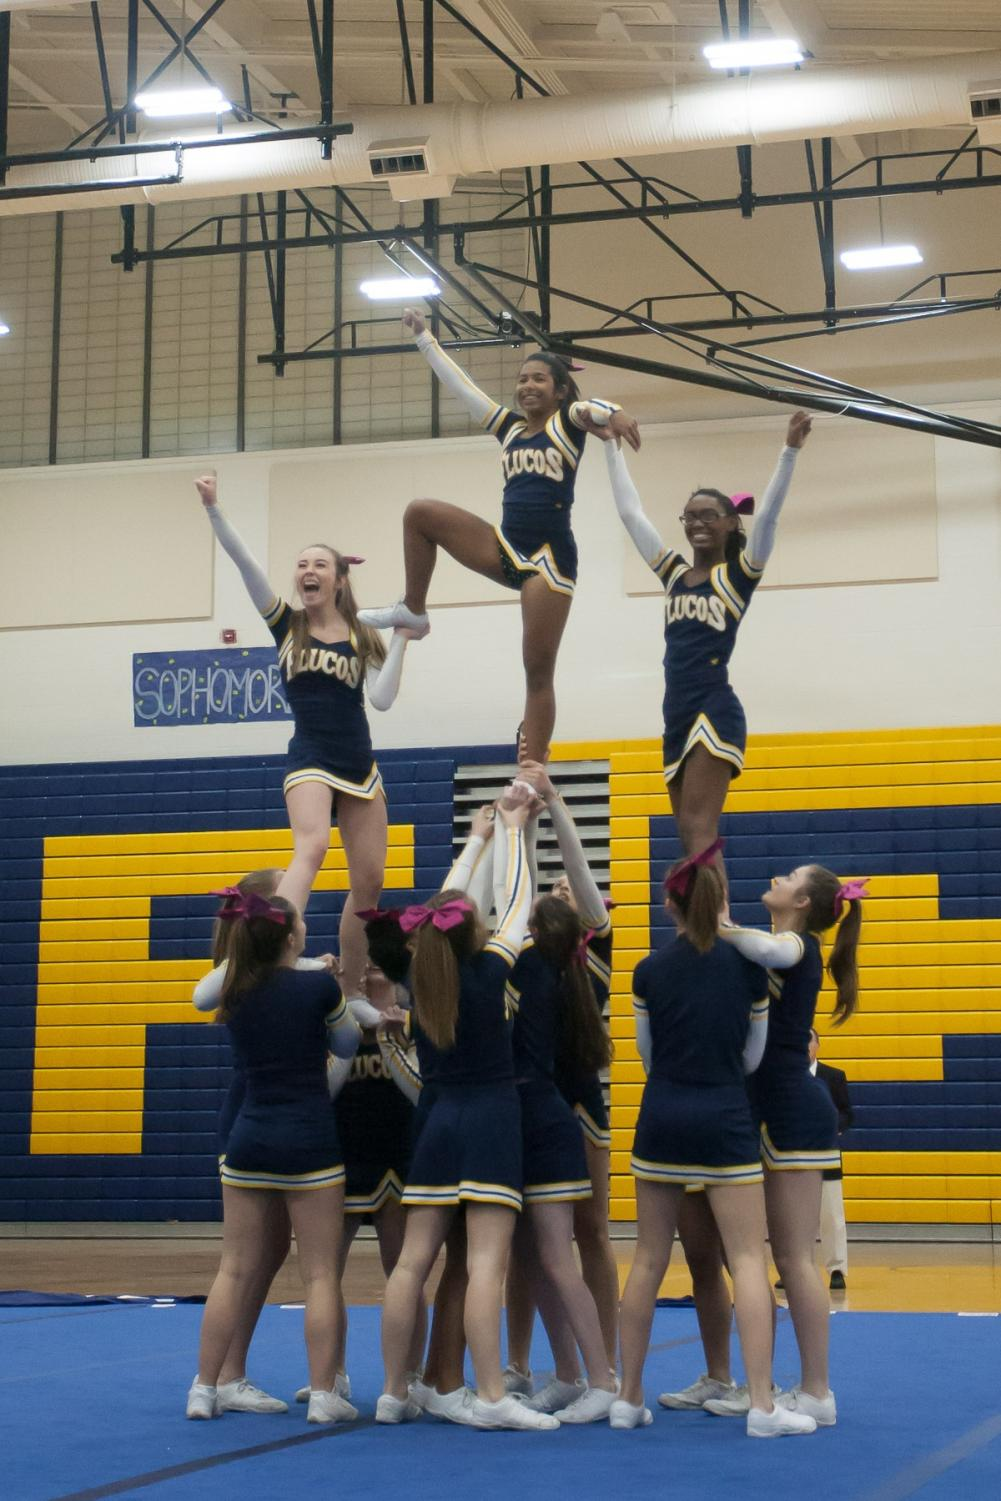 Cheerleaders during their performance at the 3A Regional Cheer Competition on Oct. 26. Photo courtesy of Fluvannaphotos.com